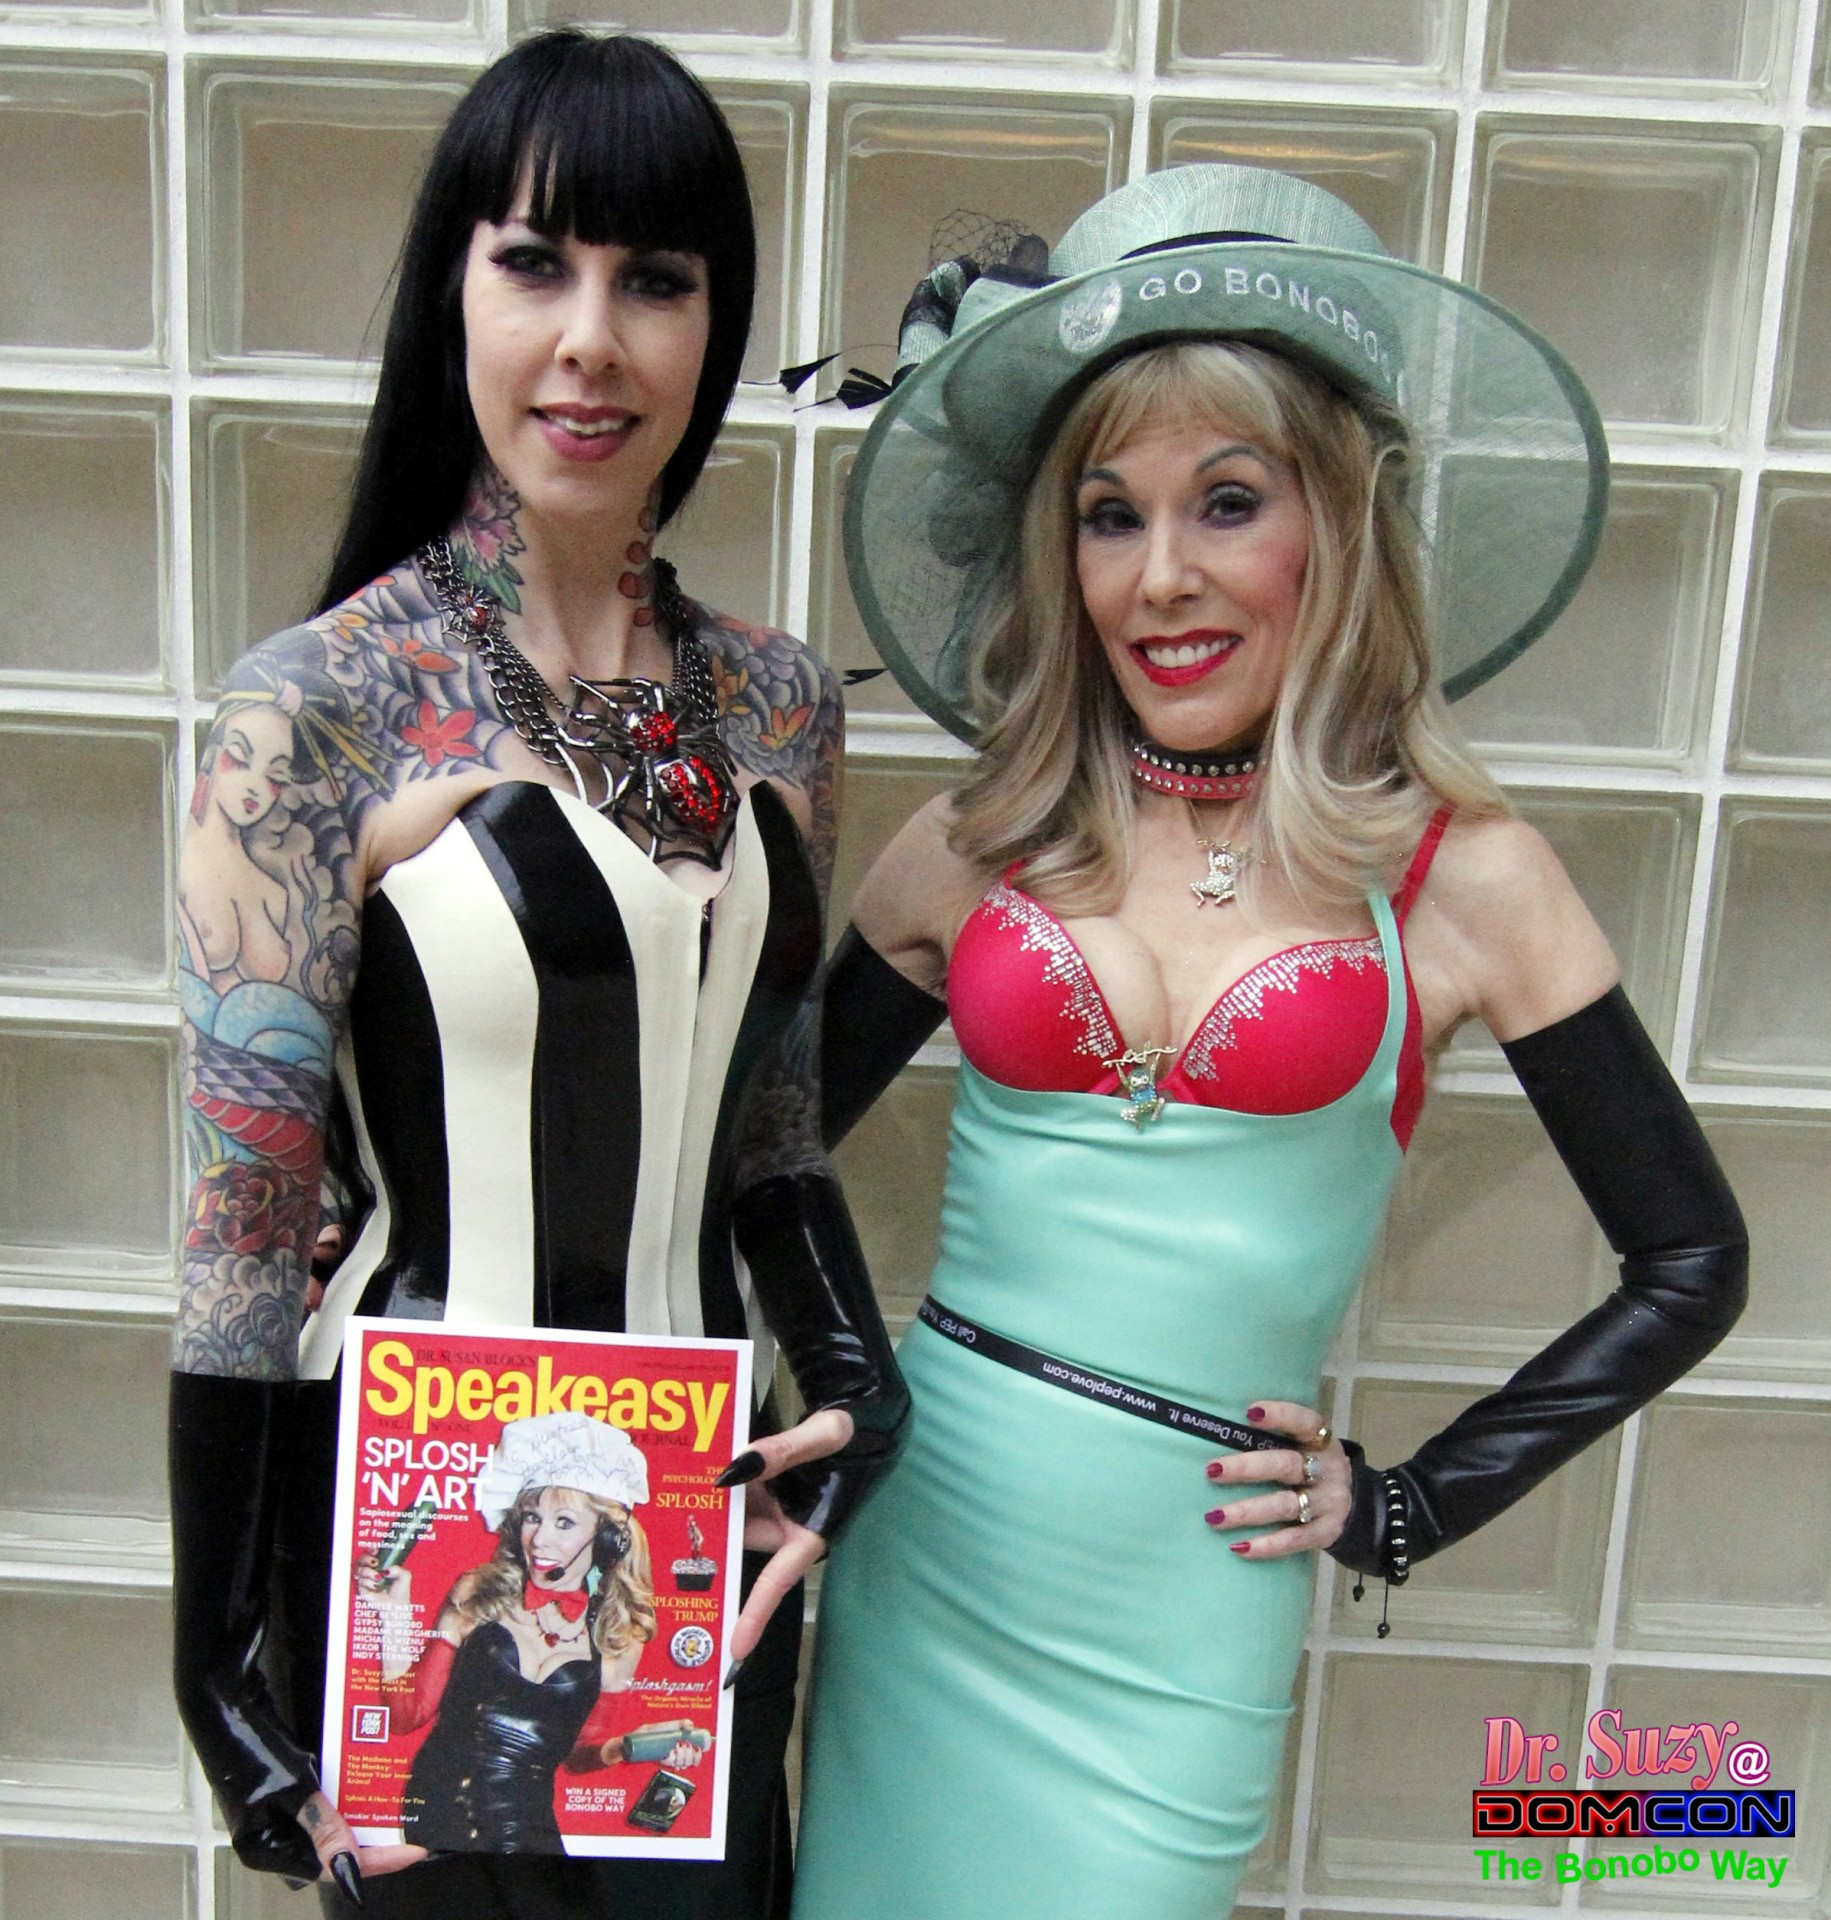 Mistress Porcelain gets one of the first copies of our Speakeasy Journal, Splosh 'n' Art edition.  Photo: Abe Bonobo